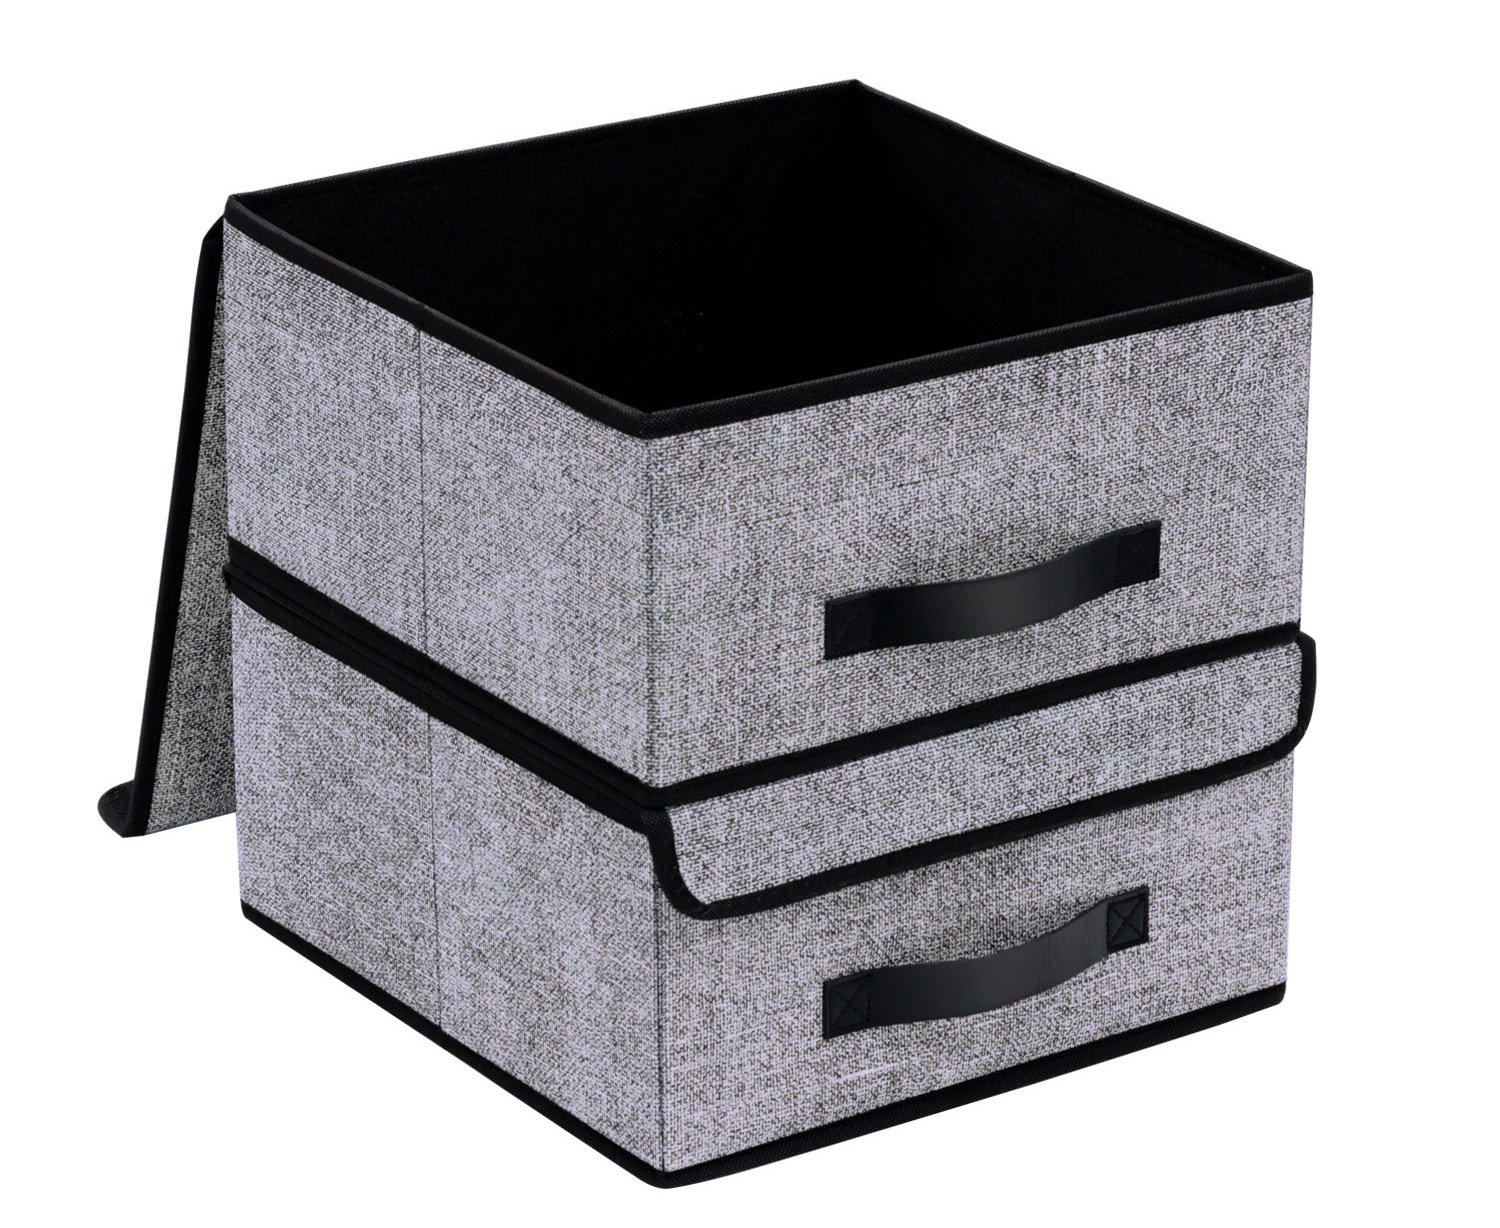 de60377edeab Onlyeasy Foldable Storage Bins Cubes Boxes with Lid - Storage Box Cube  Cubby Basket Closet Organizer Pack of Two with Leather Handles for Closet  ...